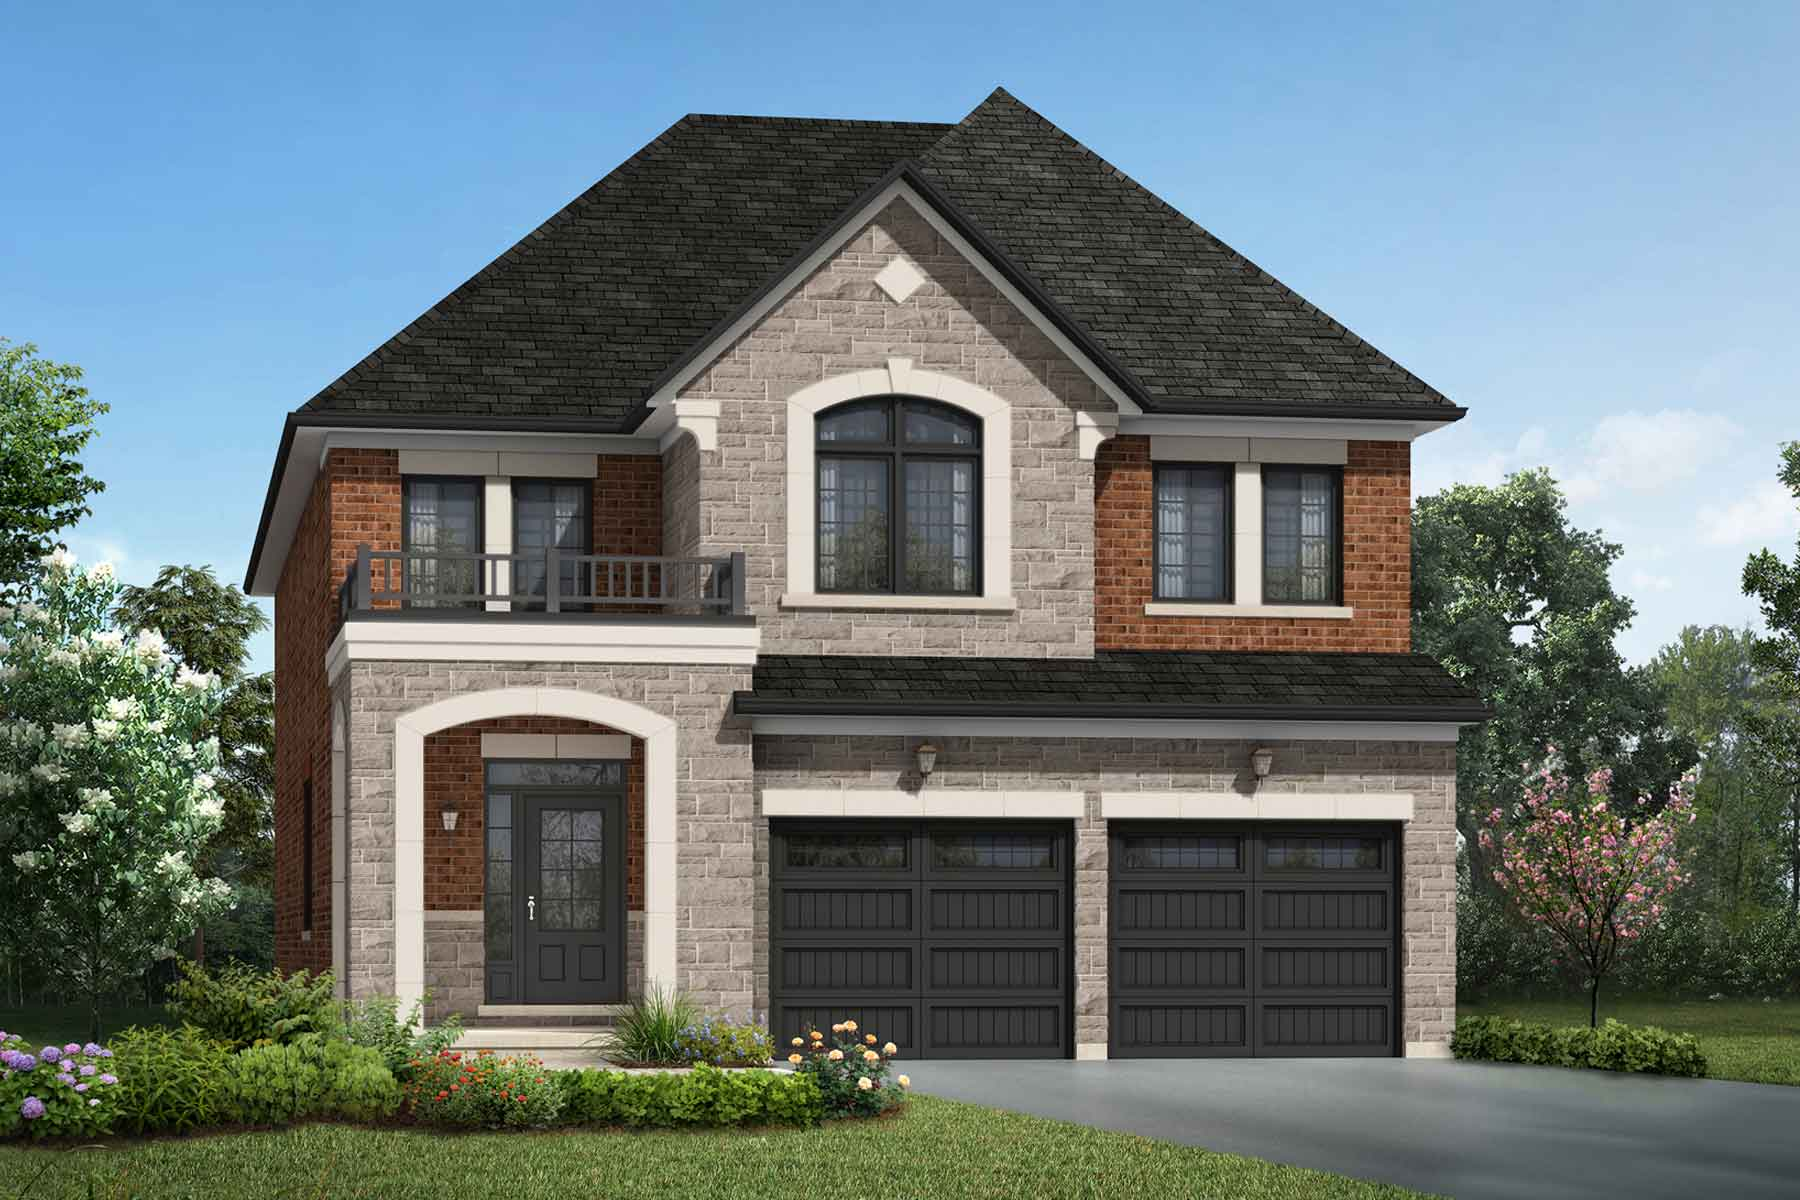 Brockridge Plan englishmanor_seatonwhitevale_brockridge_main at Seaton Whitevale in Pickering Ontario by Mattamy Homes